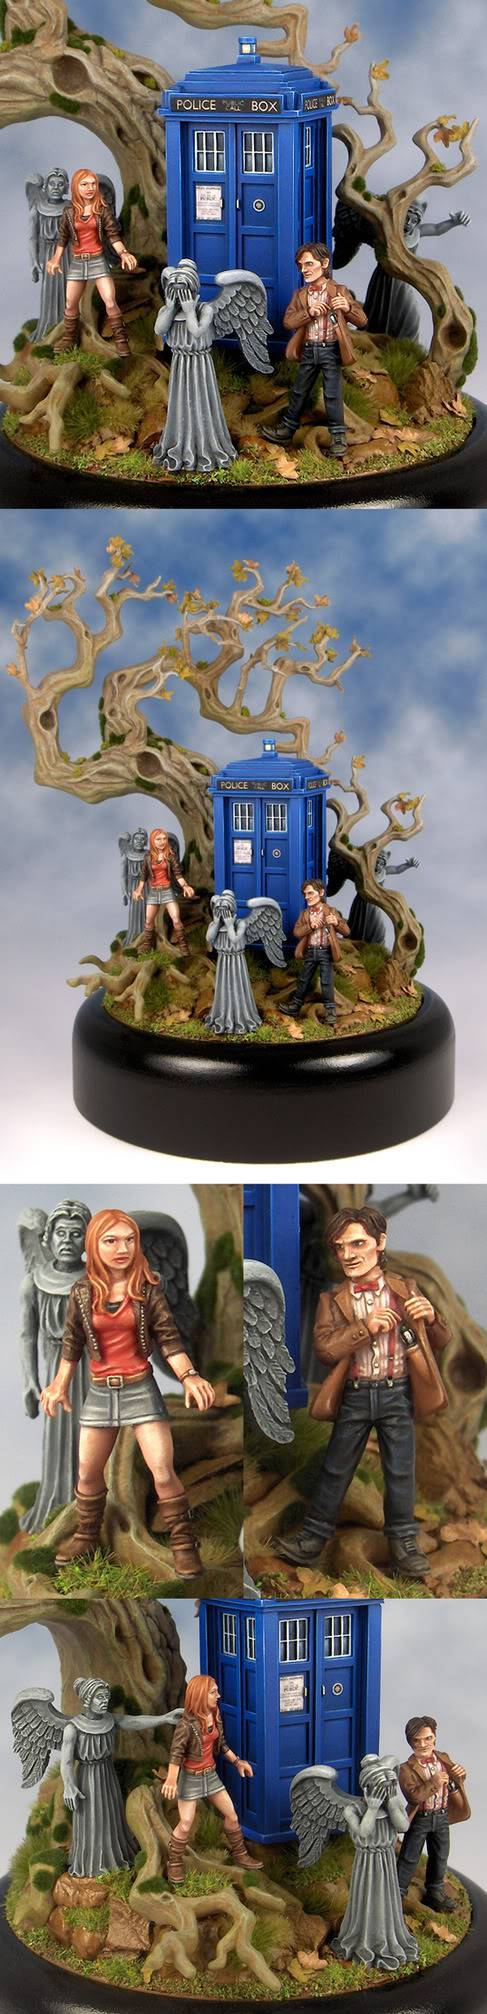 """Into the woods - The Doctor, Amy, and the Weeping Angels par David Soper """"Sproket"""" Into-the-woods-2-1"""